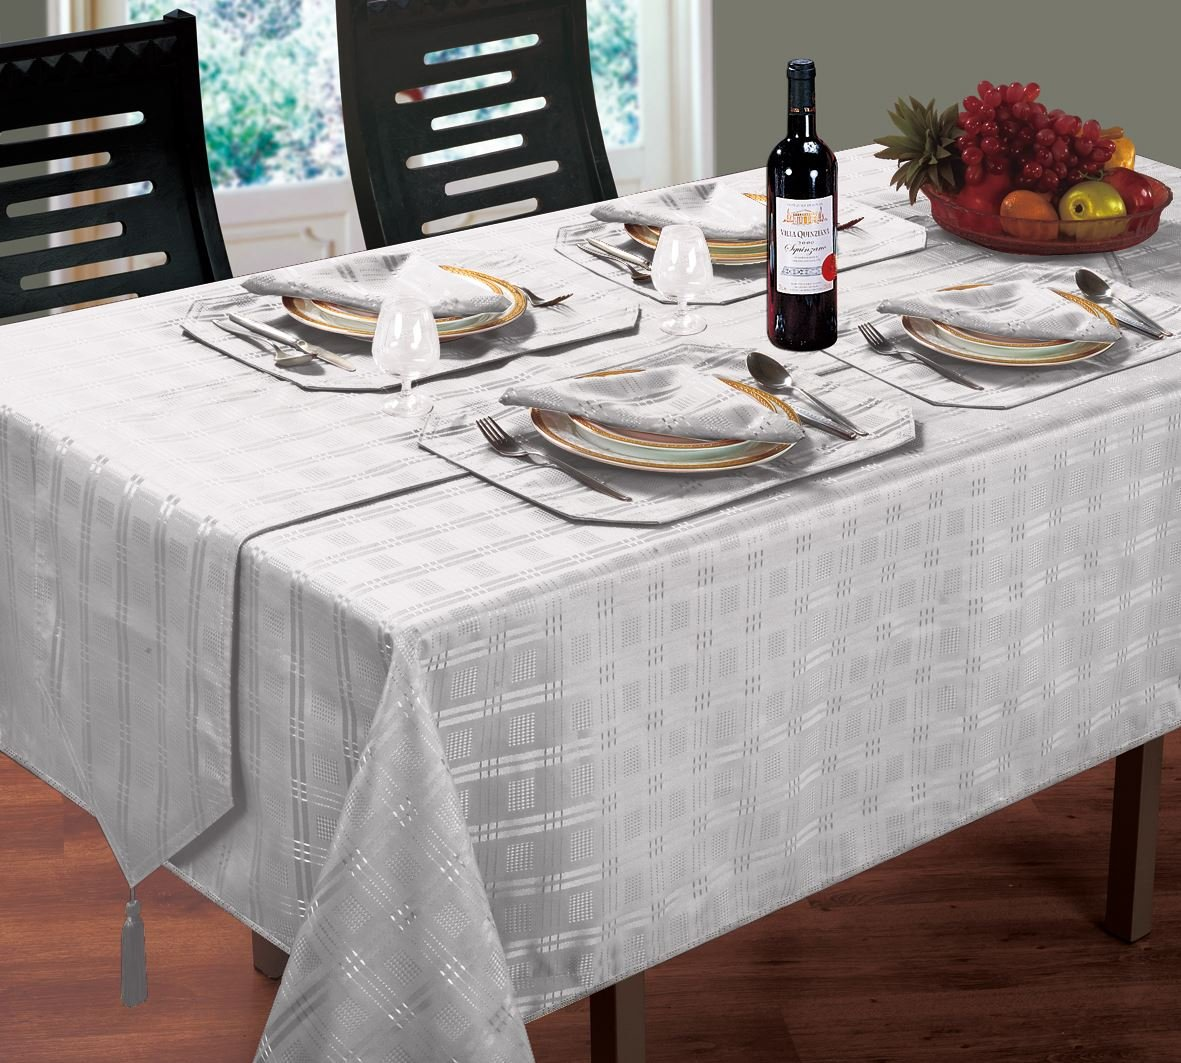 LUXURIOUS MODERN CHRISTMAS WOVEN JACQUARD CHECK SILVER TABLE CLOTH 70 ROUND Christmas Unique